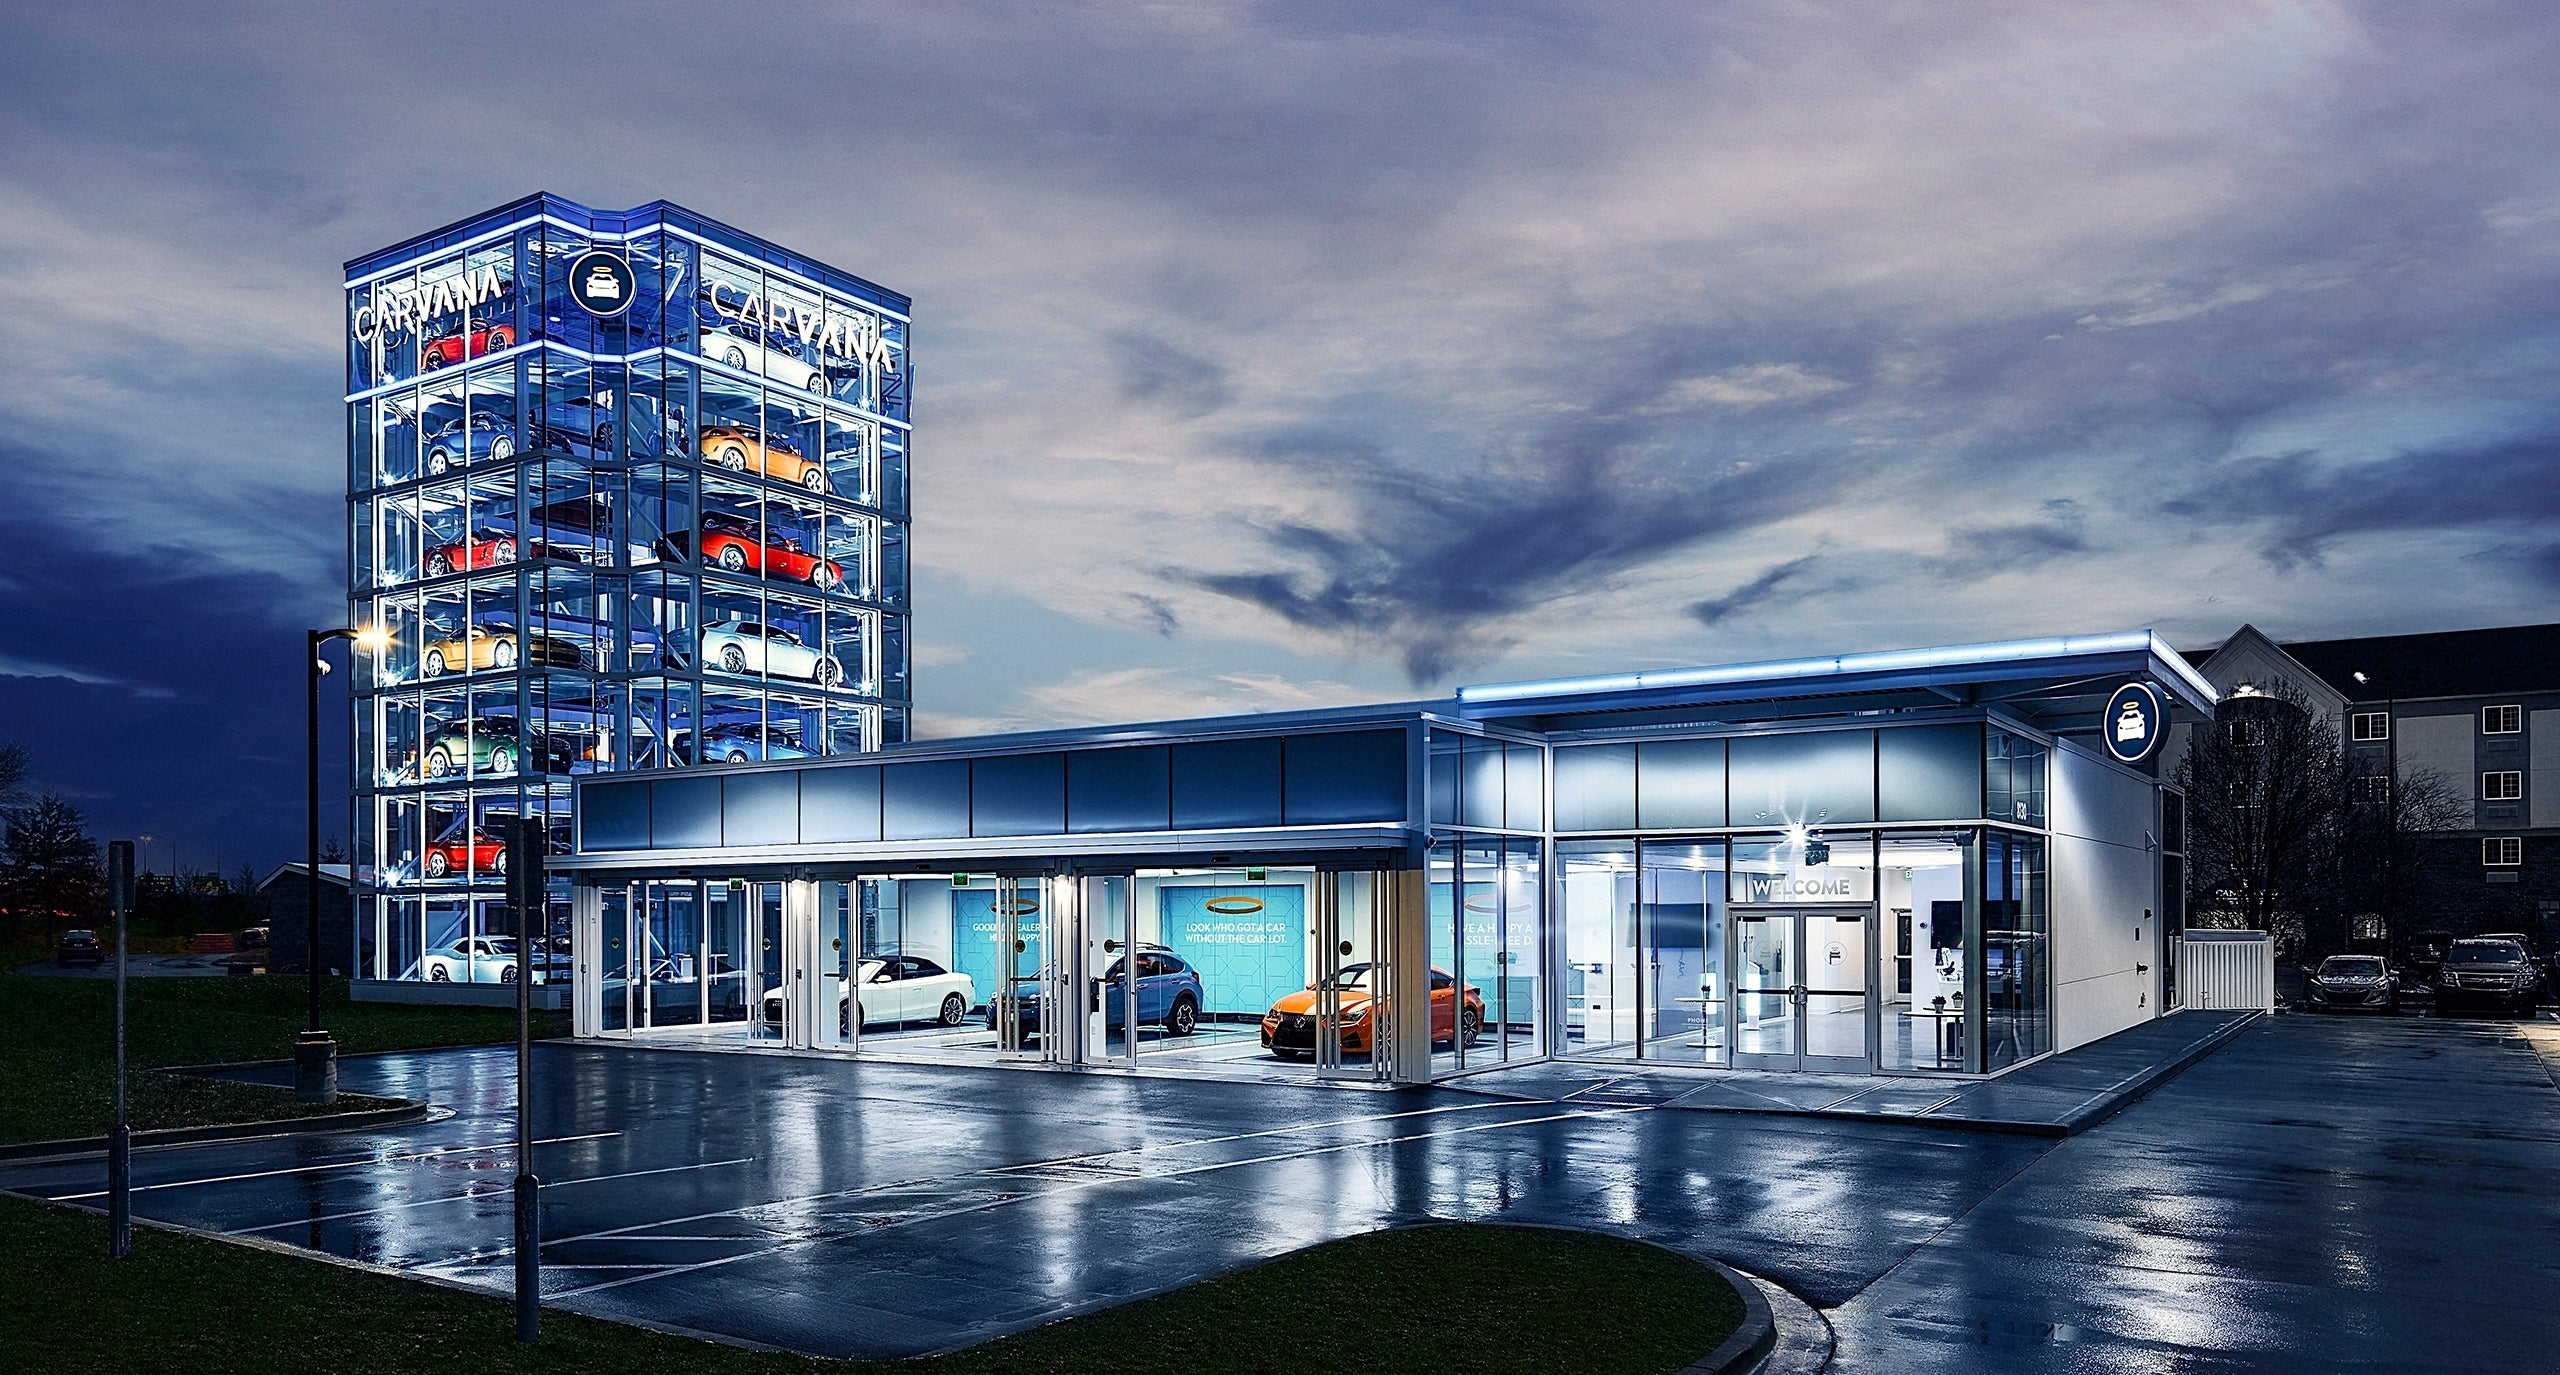 Why Carvana's Car Vending Machine Is More Than Just a